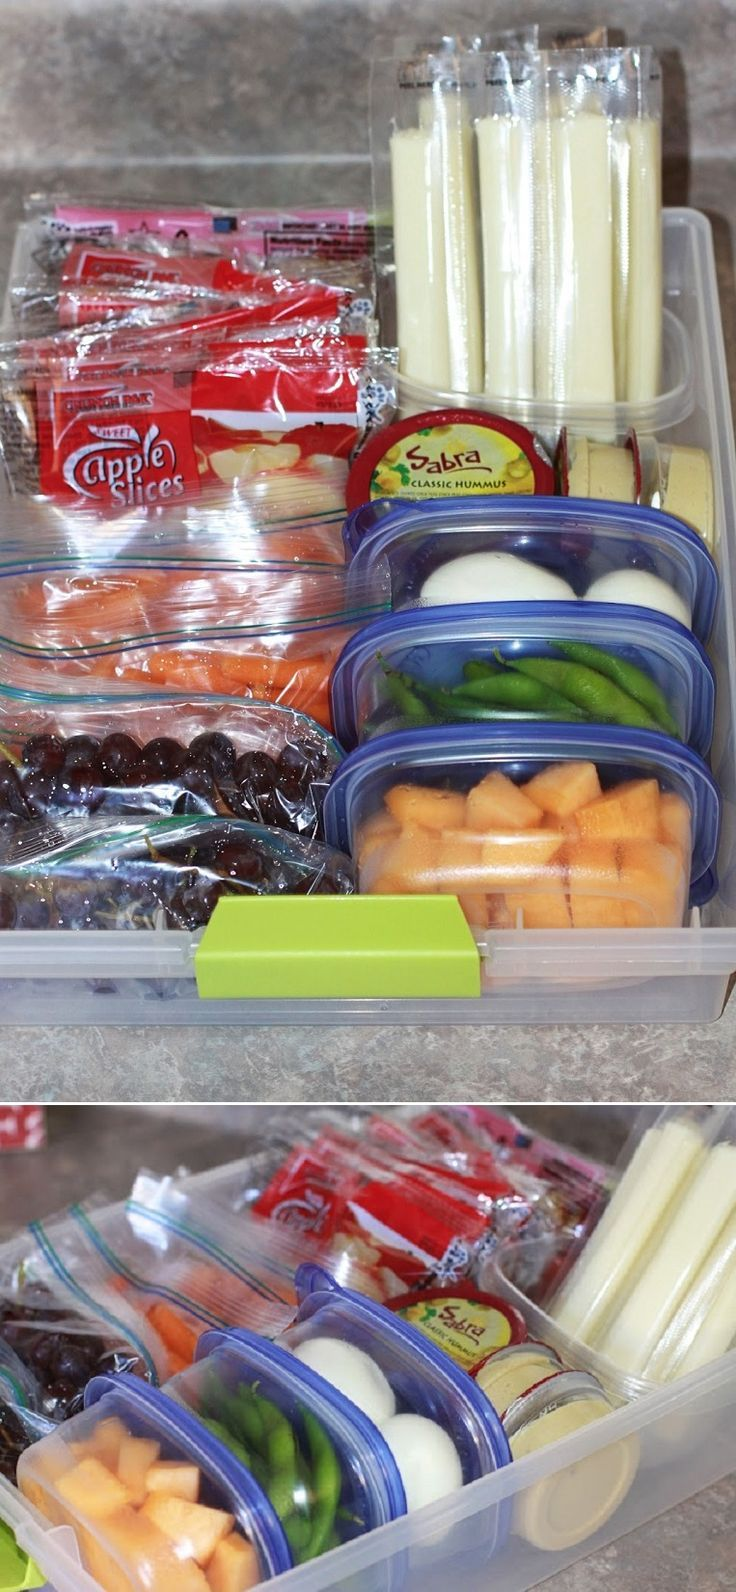 How to organize your fridge so it doesn't look like that junk closet or drawer that everyone seems to have!